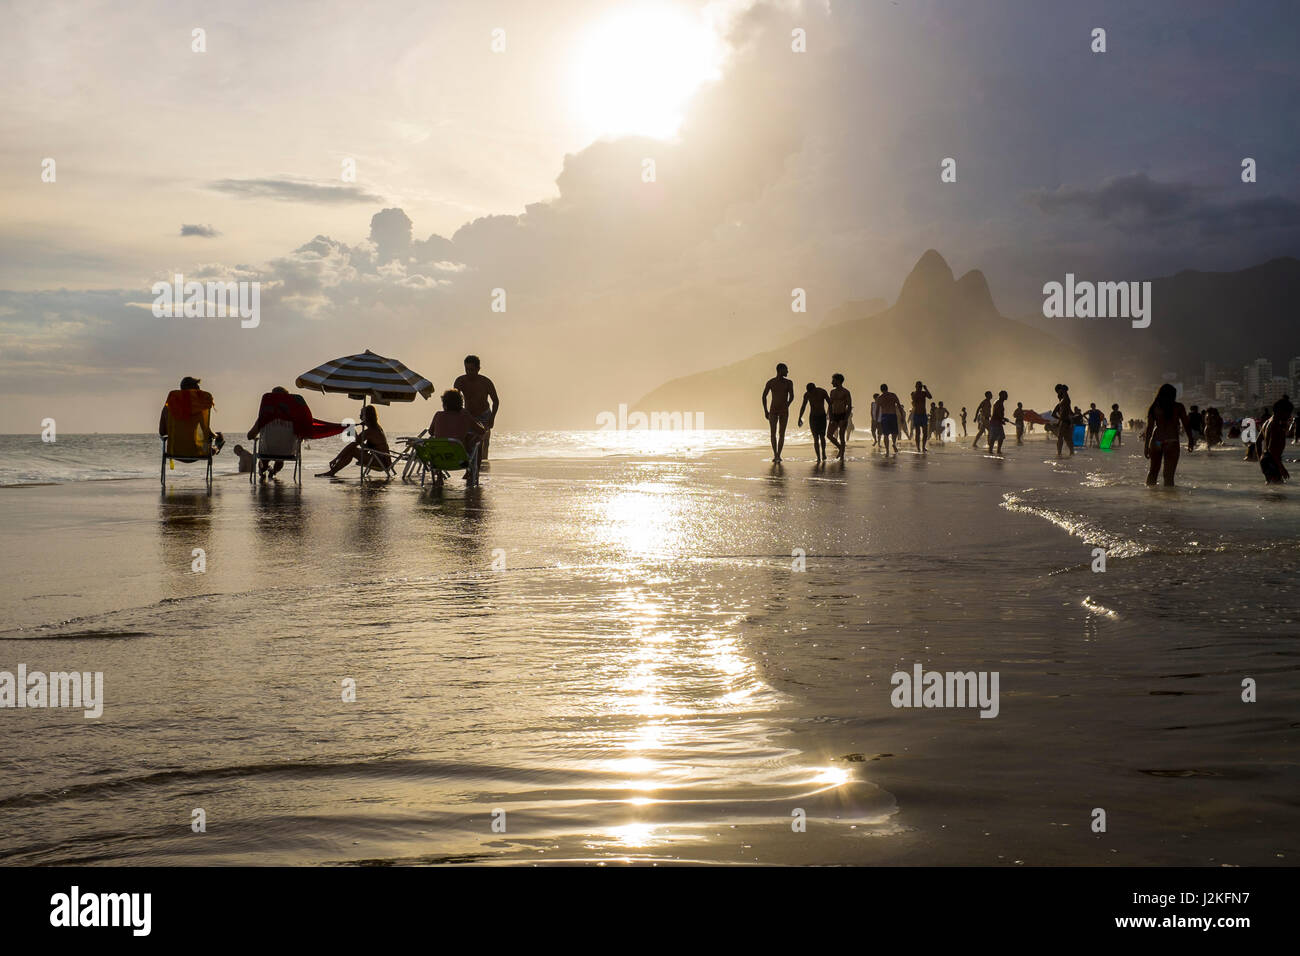 RIO DE JANEIRO - JANUARY 16, 2017: Visitors enjoy the last of the afternoon sun as the tide sweeps onto a sunset - Stock Image